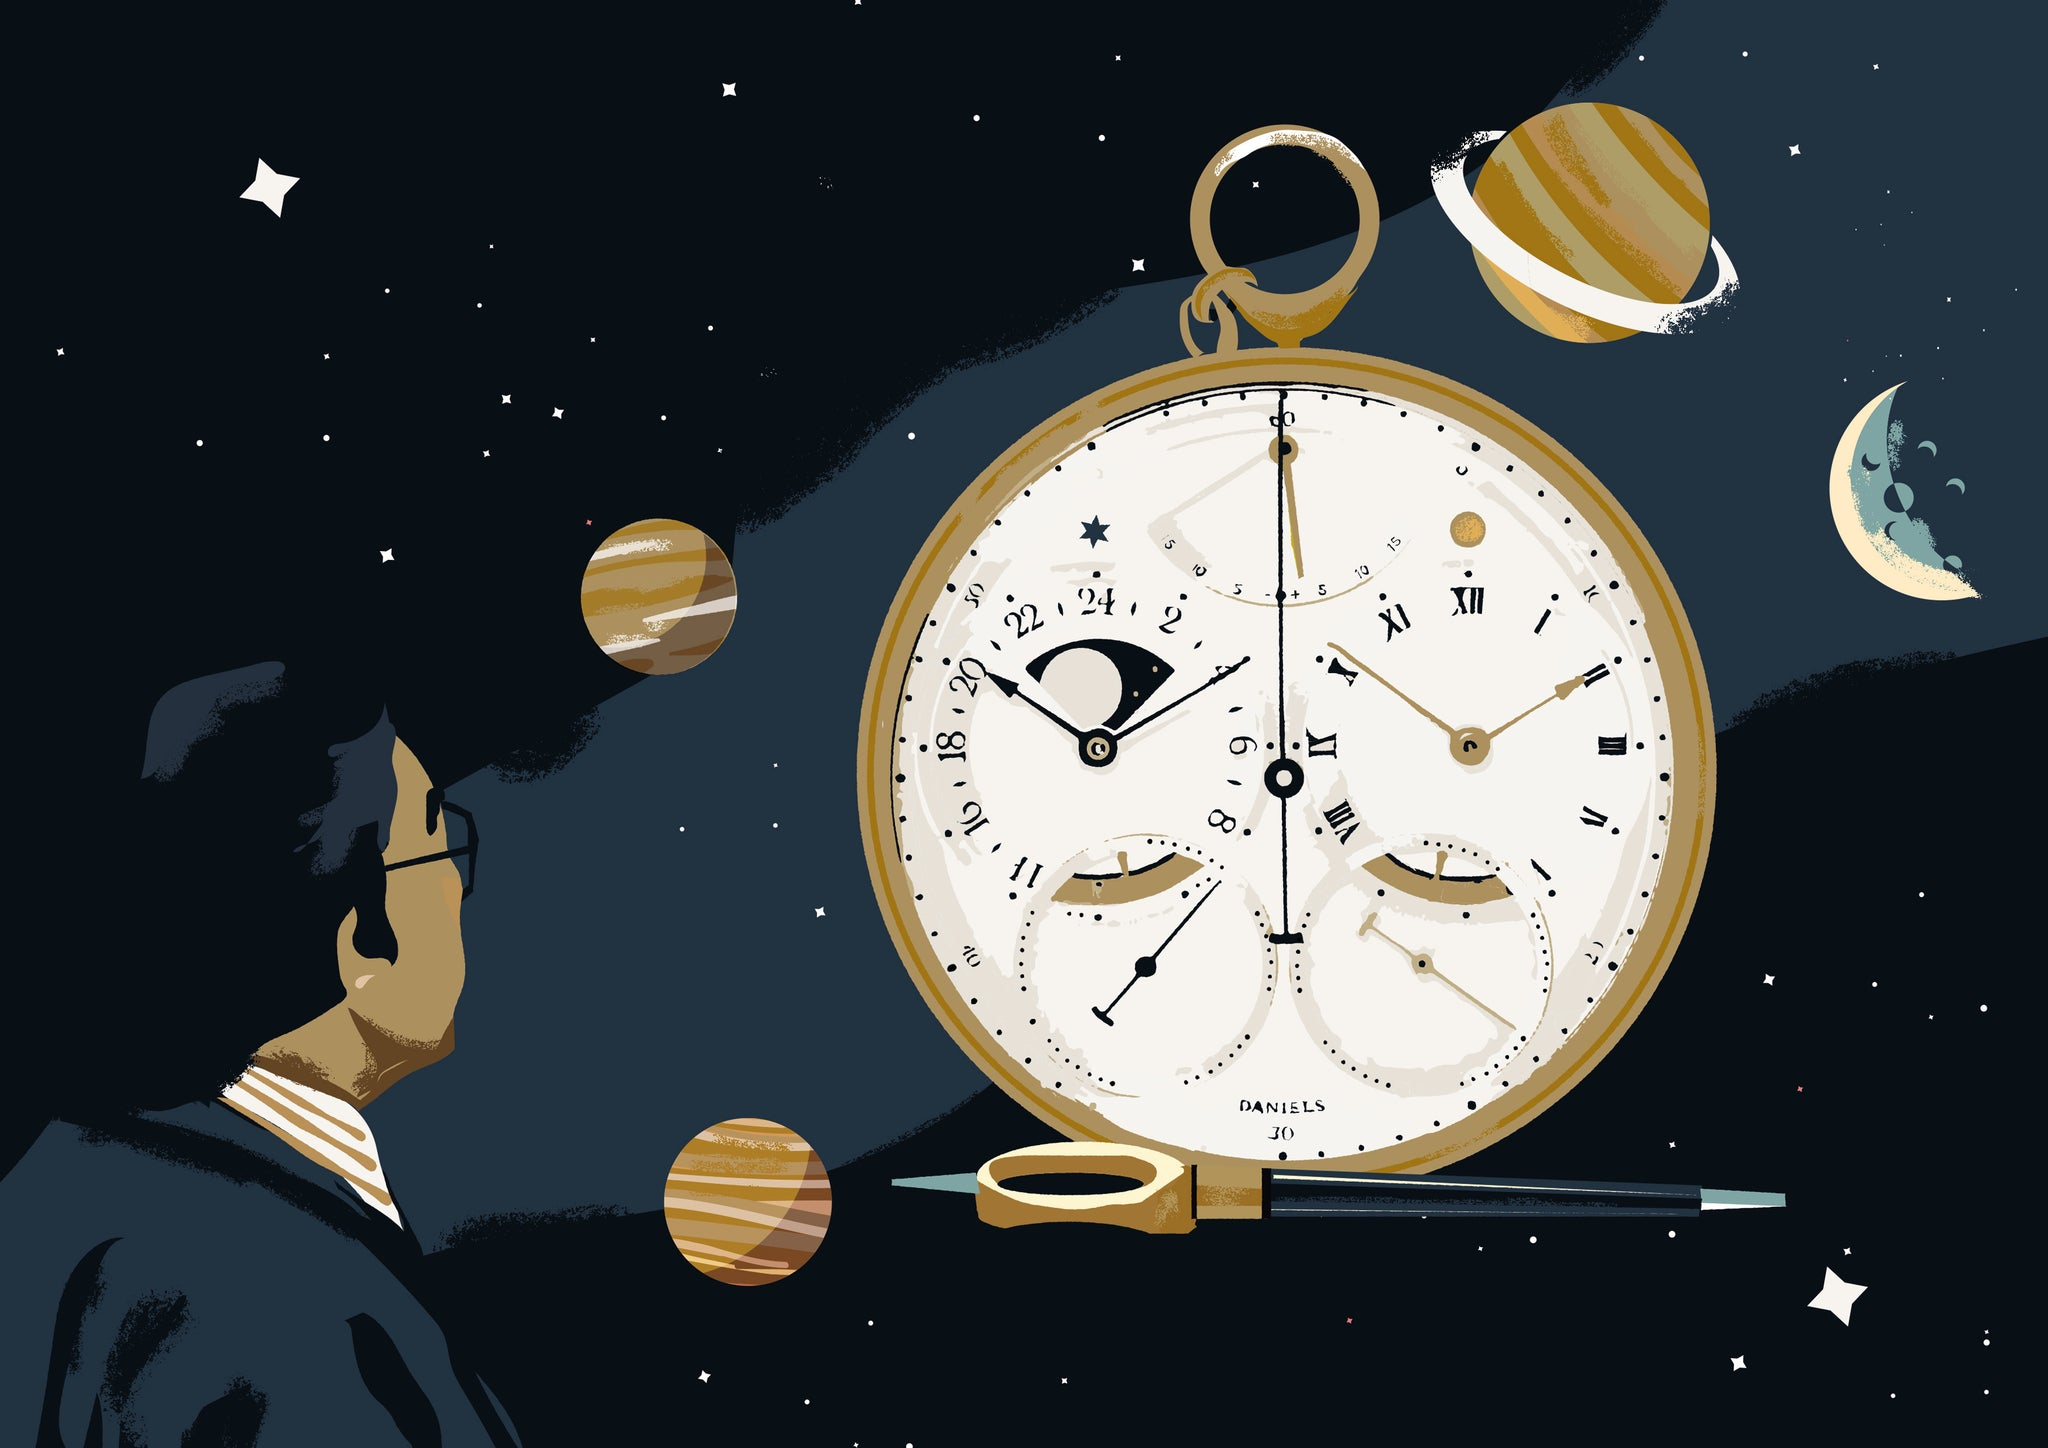 Prints Harry Illustration of George Daniels Space Traveller watch